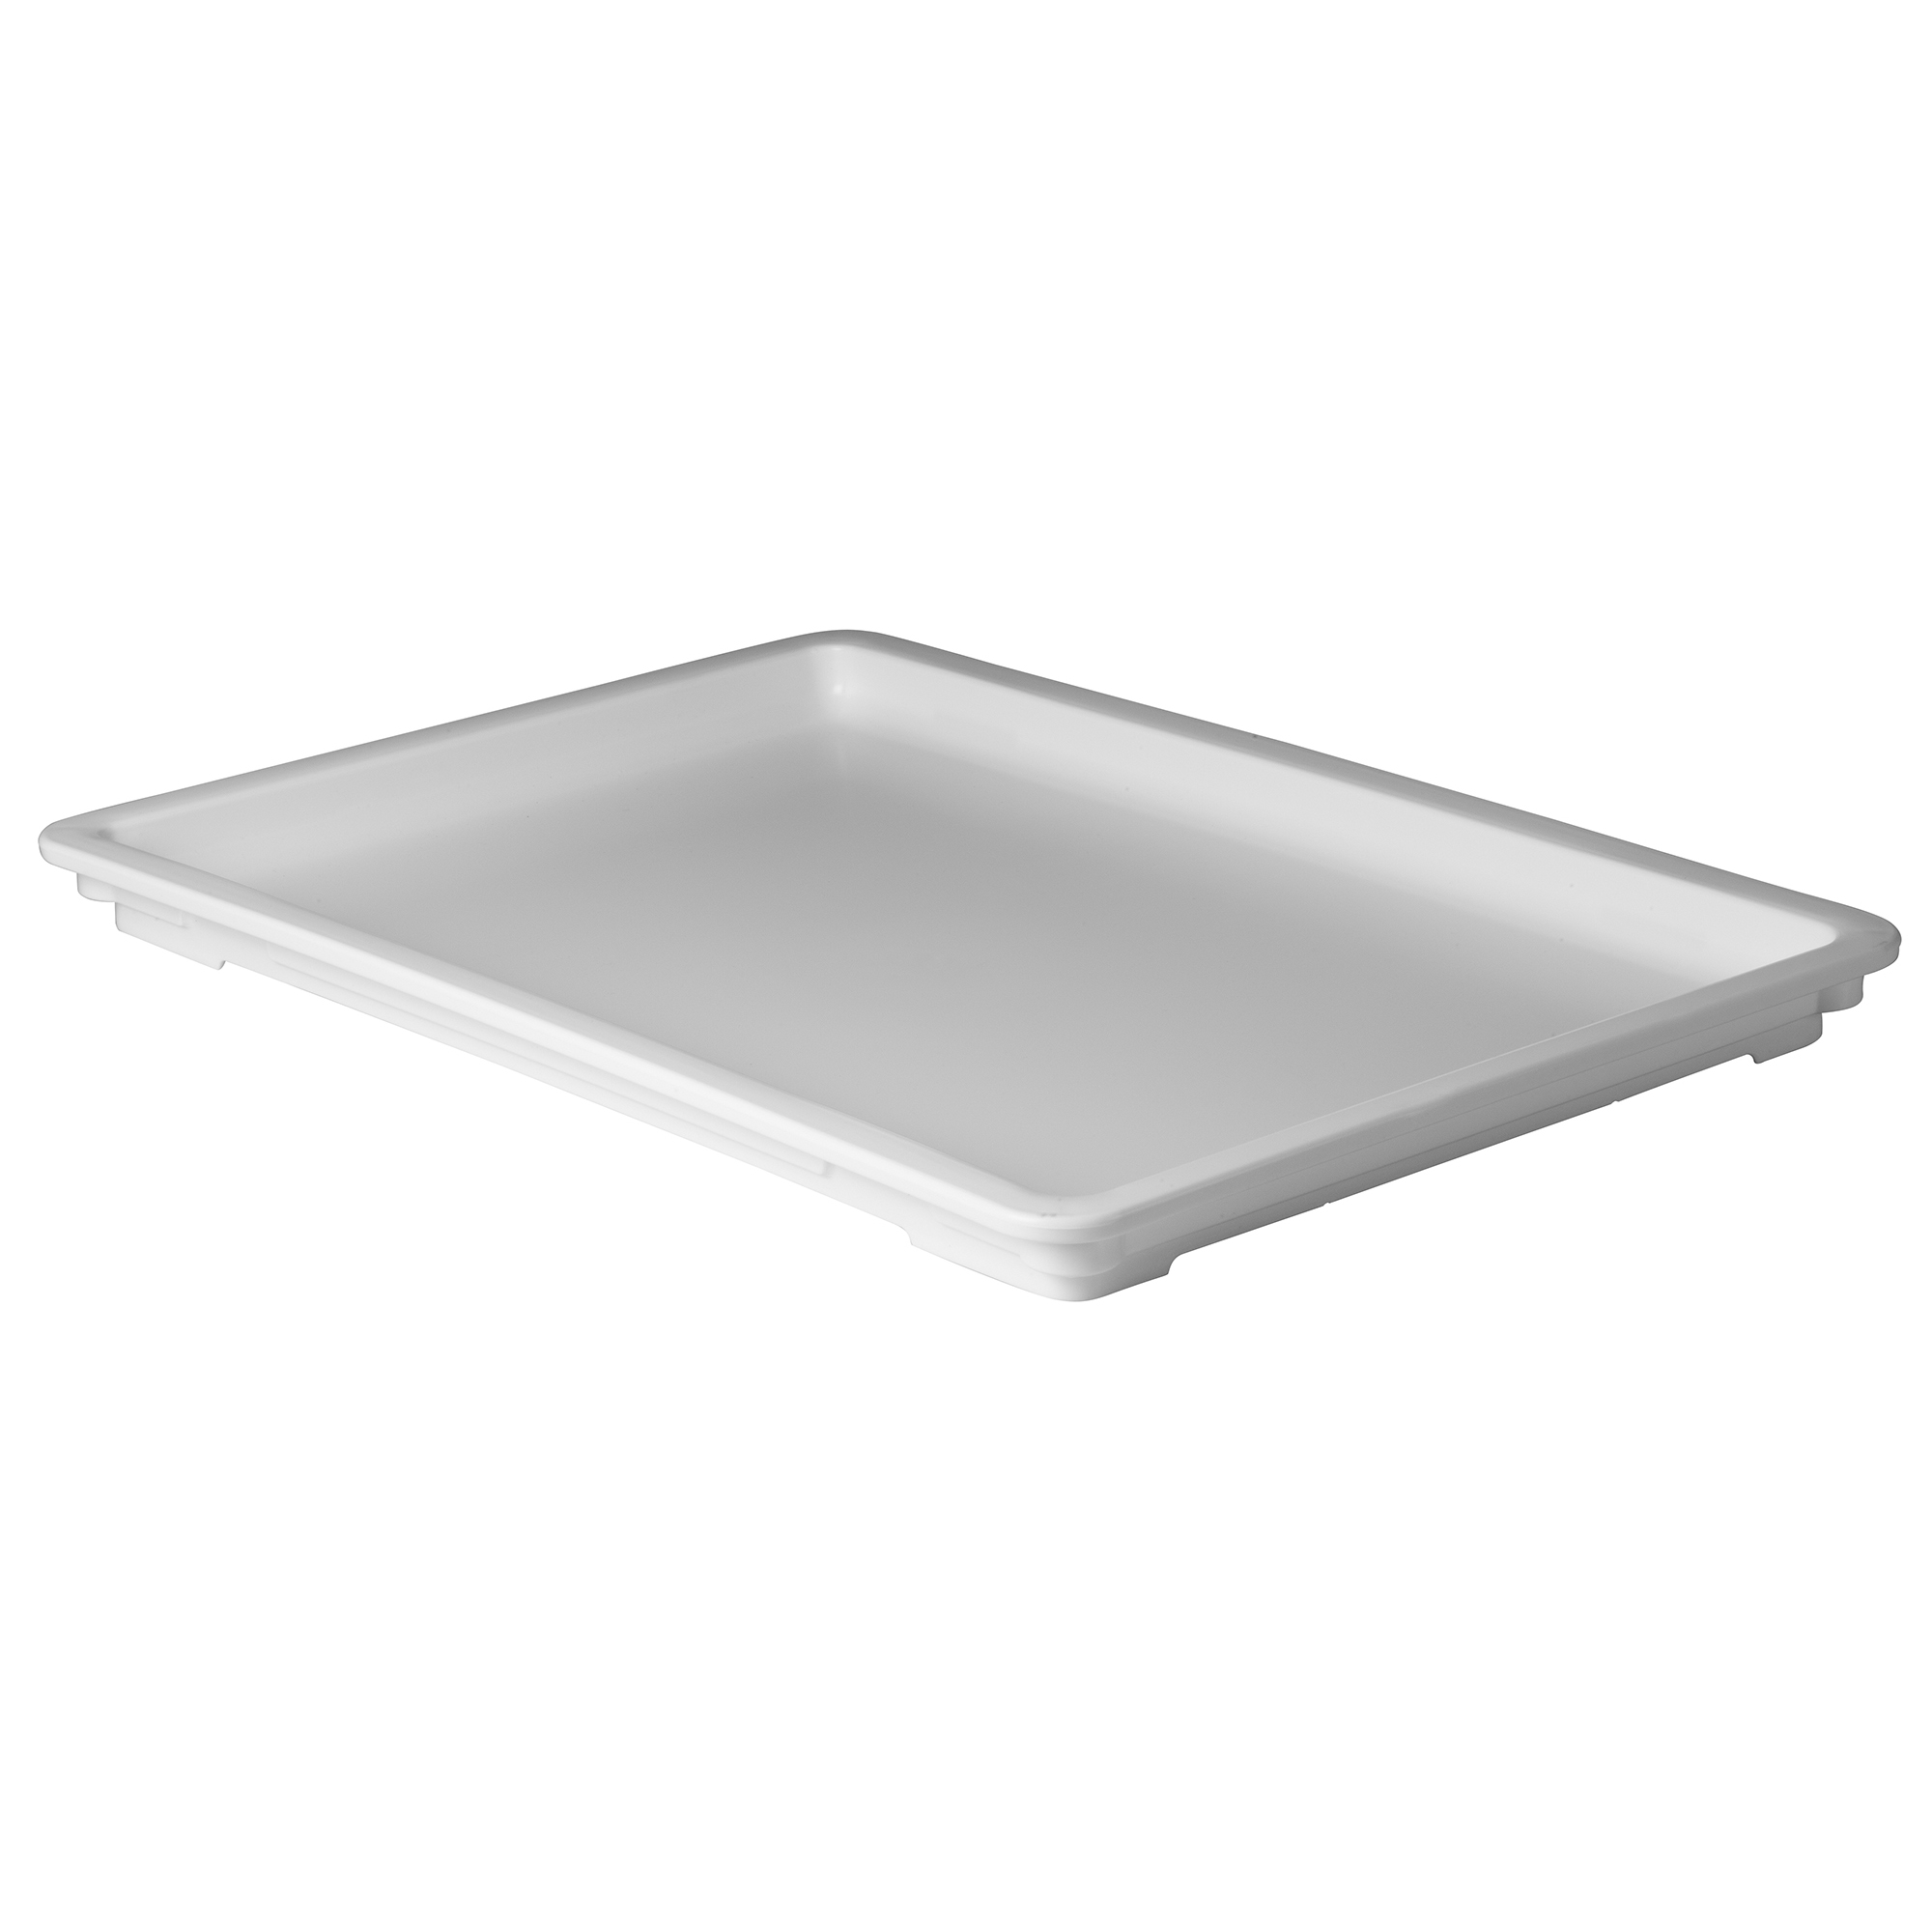 Winco PL-36NC dough proofing retarding pans / boxes